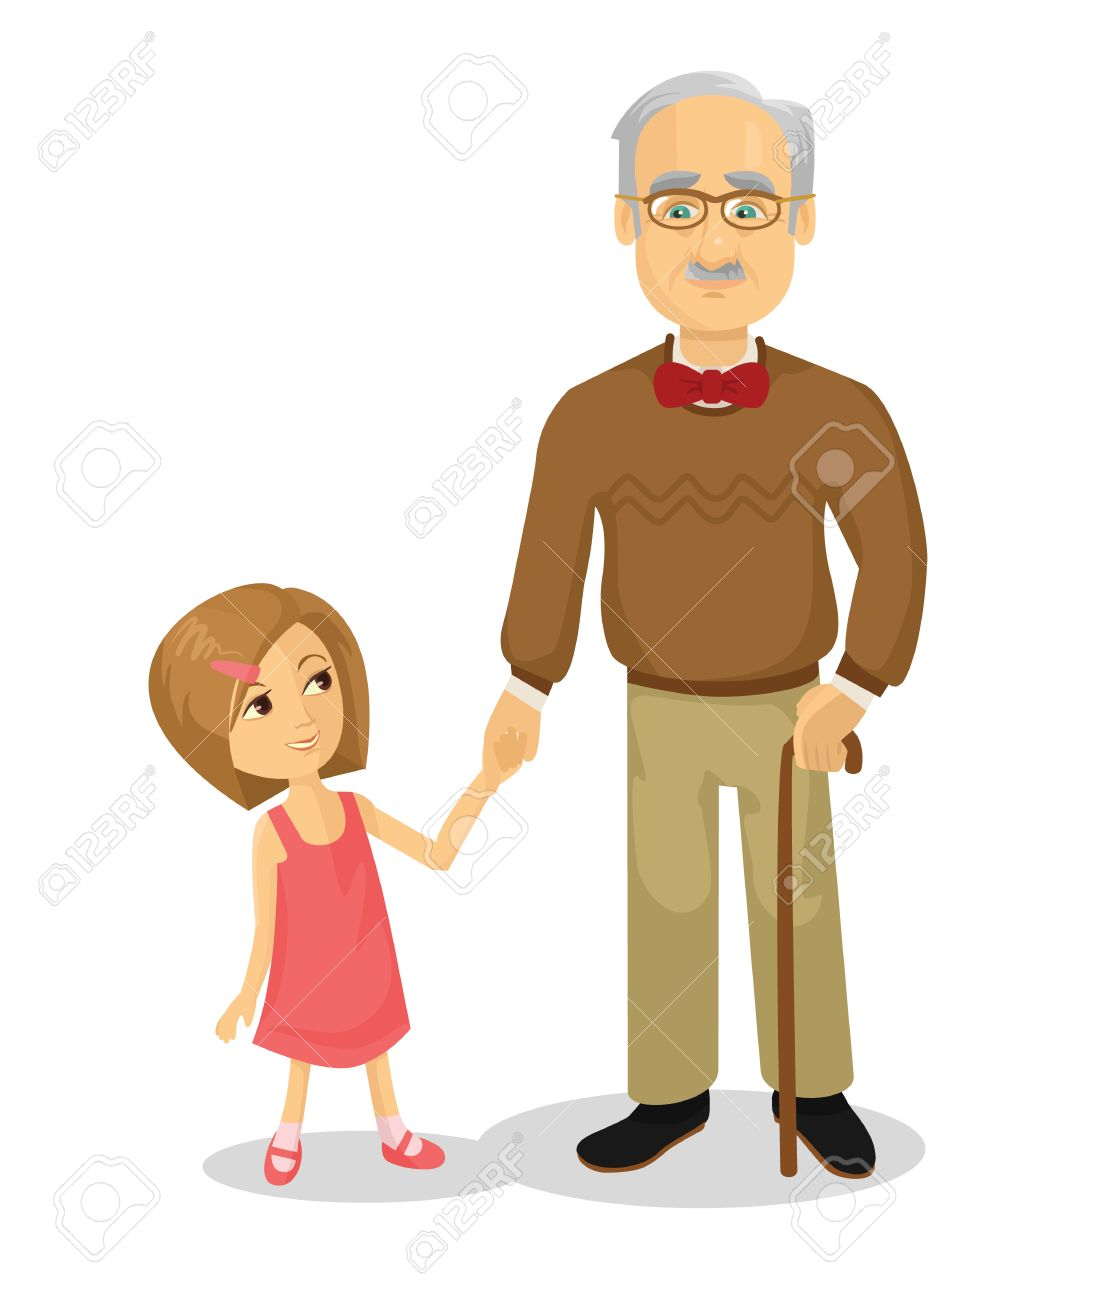 Grandfather and grandson. Vector flat cartoon illustration.